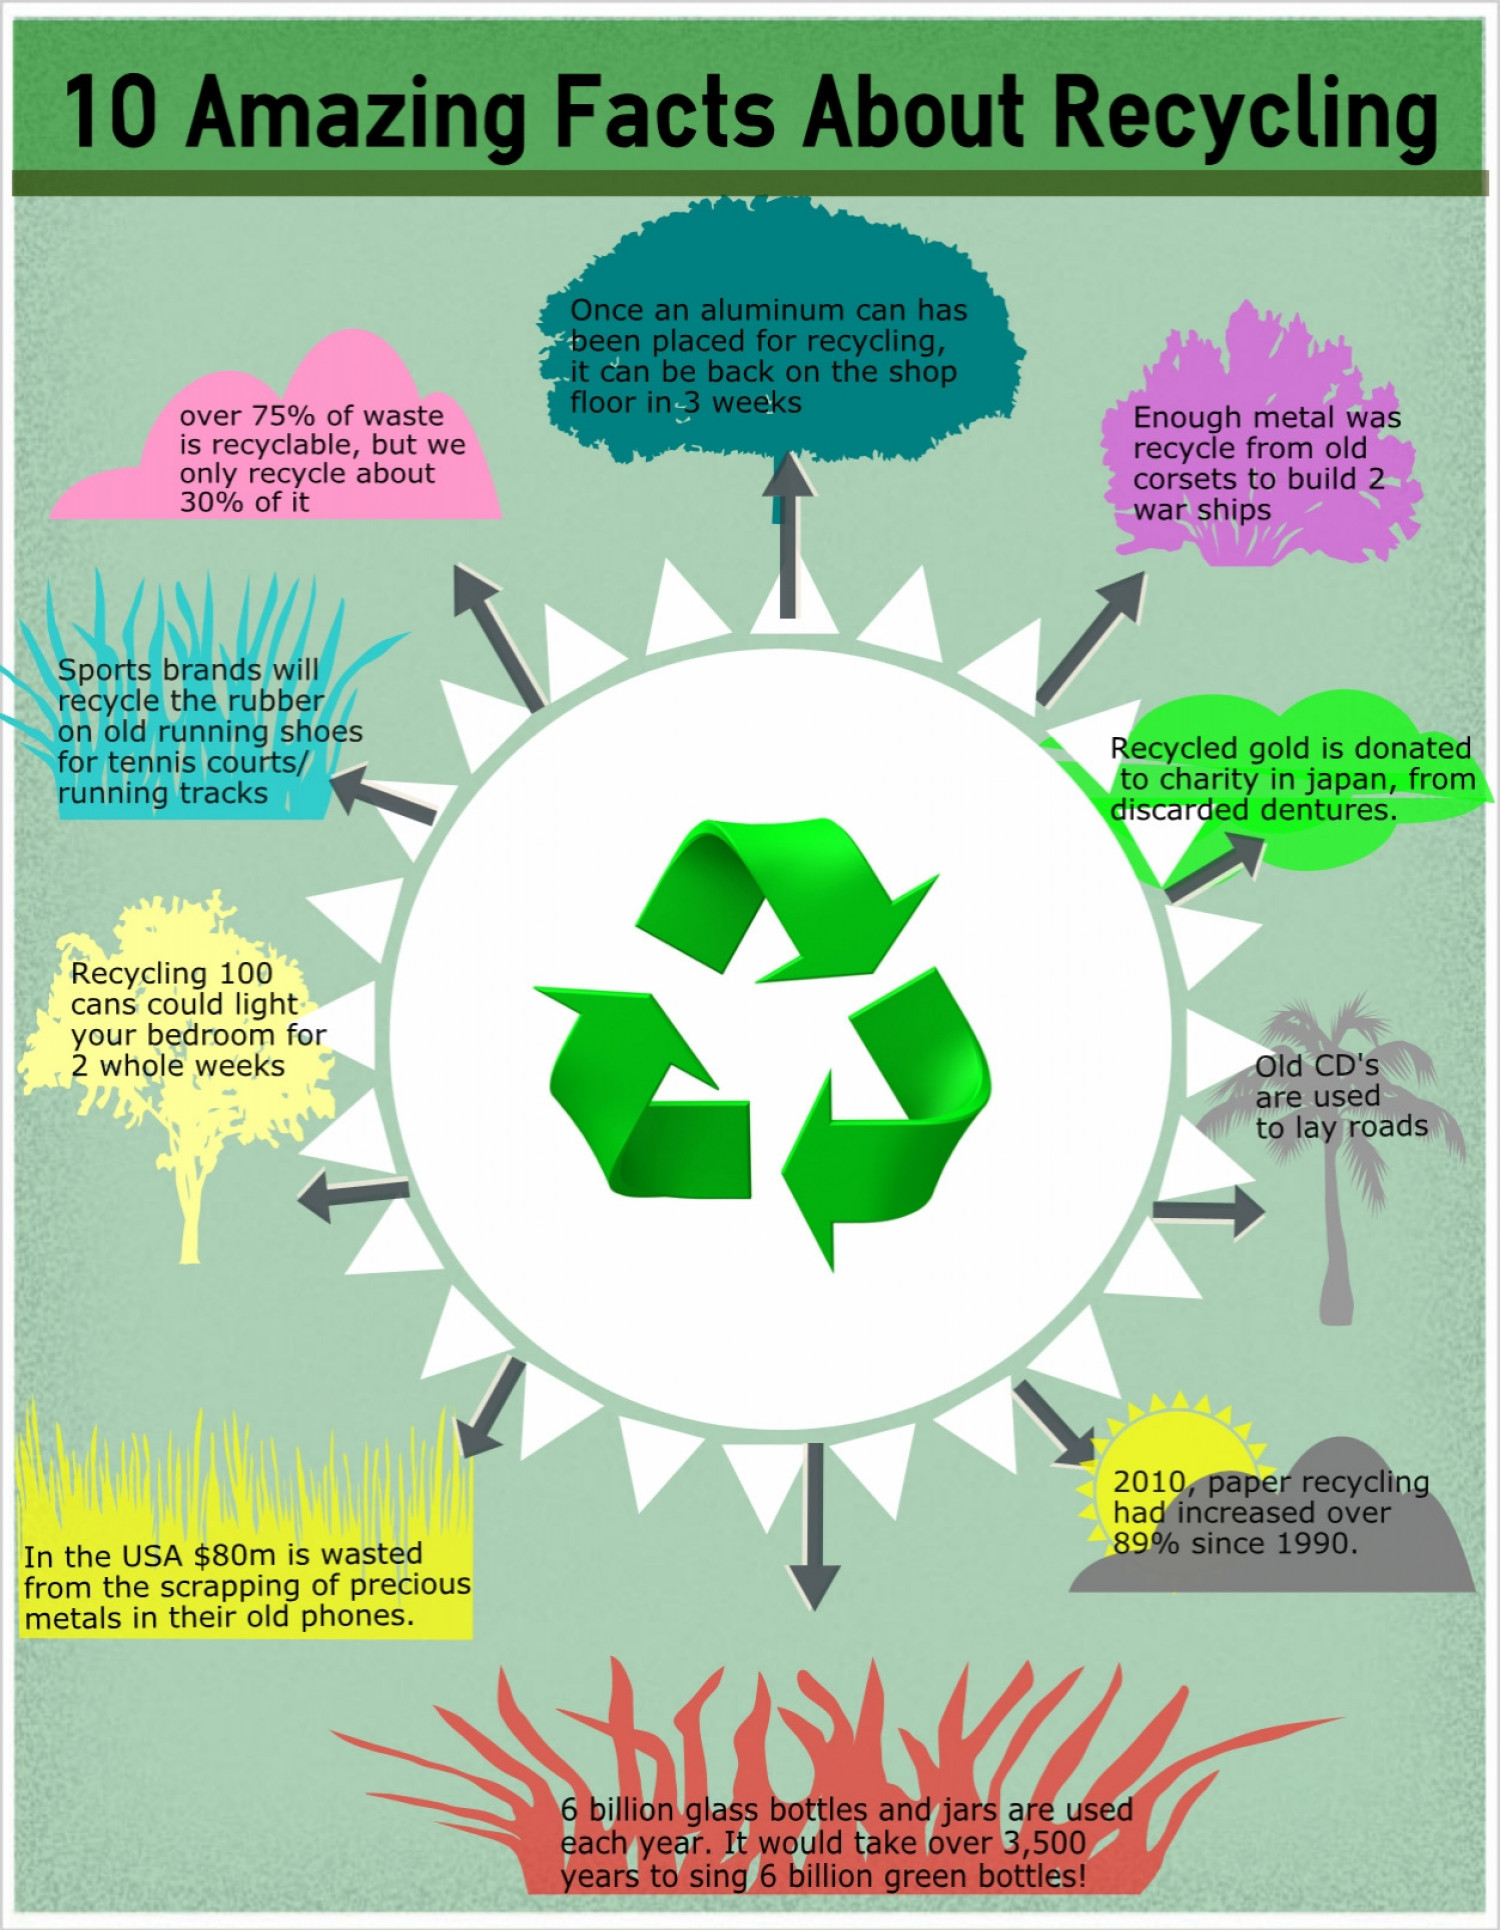 an essay about recycling Recycling is one of the best ways for you to have a positive impact on the world in  which we live recycling is important to both the natural environment and us.